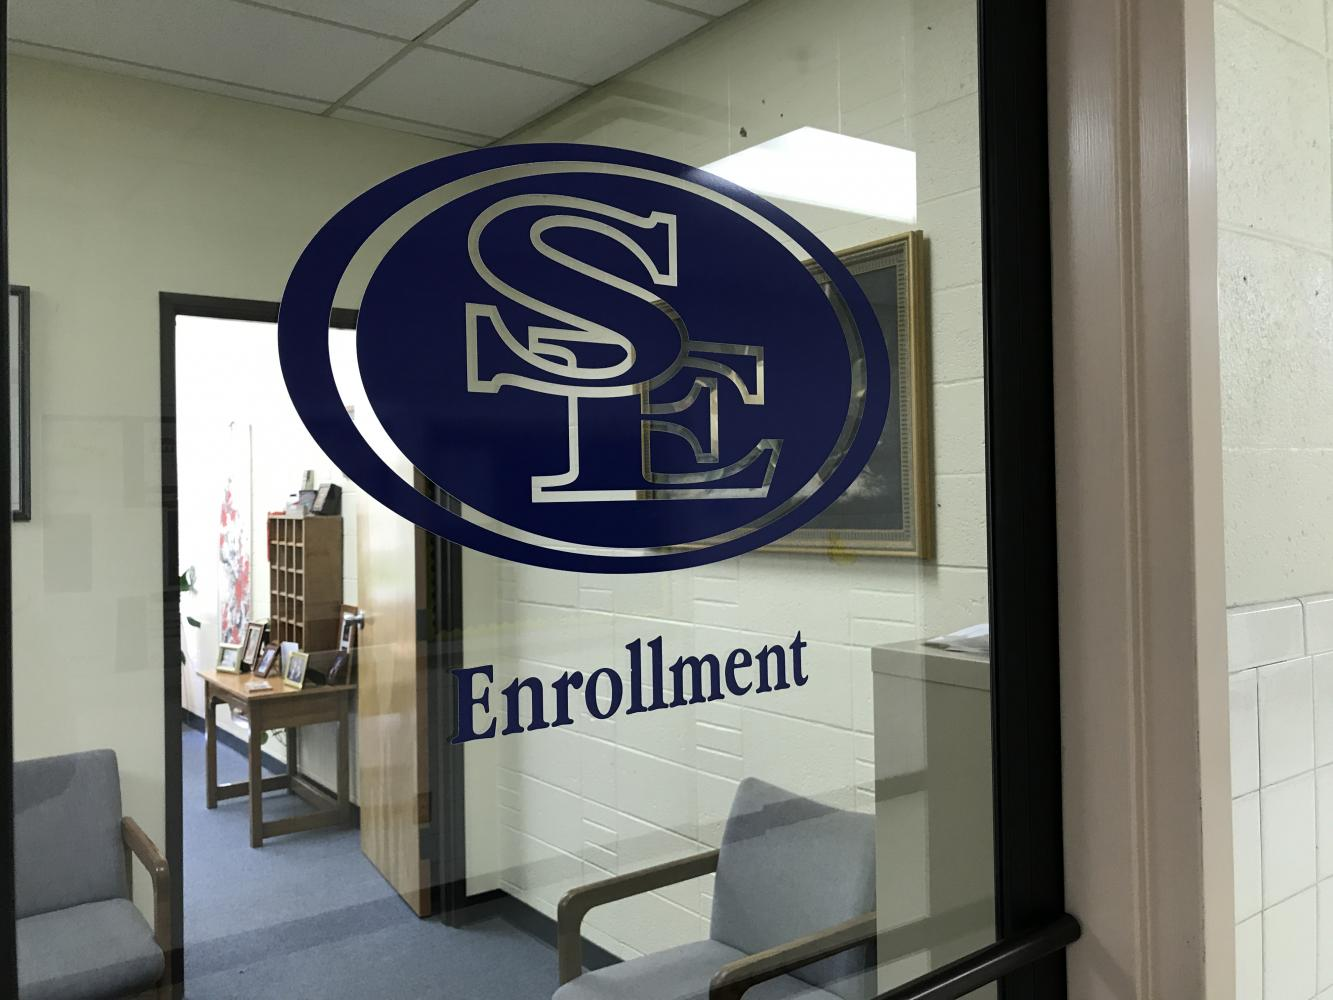 With such a large increase in students this fall, the Enrollment Services department on campus were going nonstop during the first week of classes to get students in classes and ready for this upcoming semester.